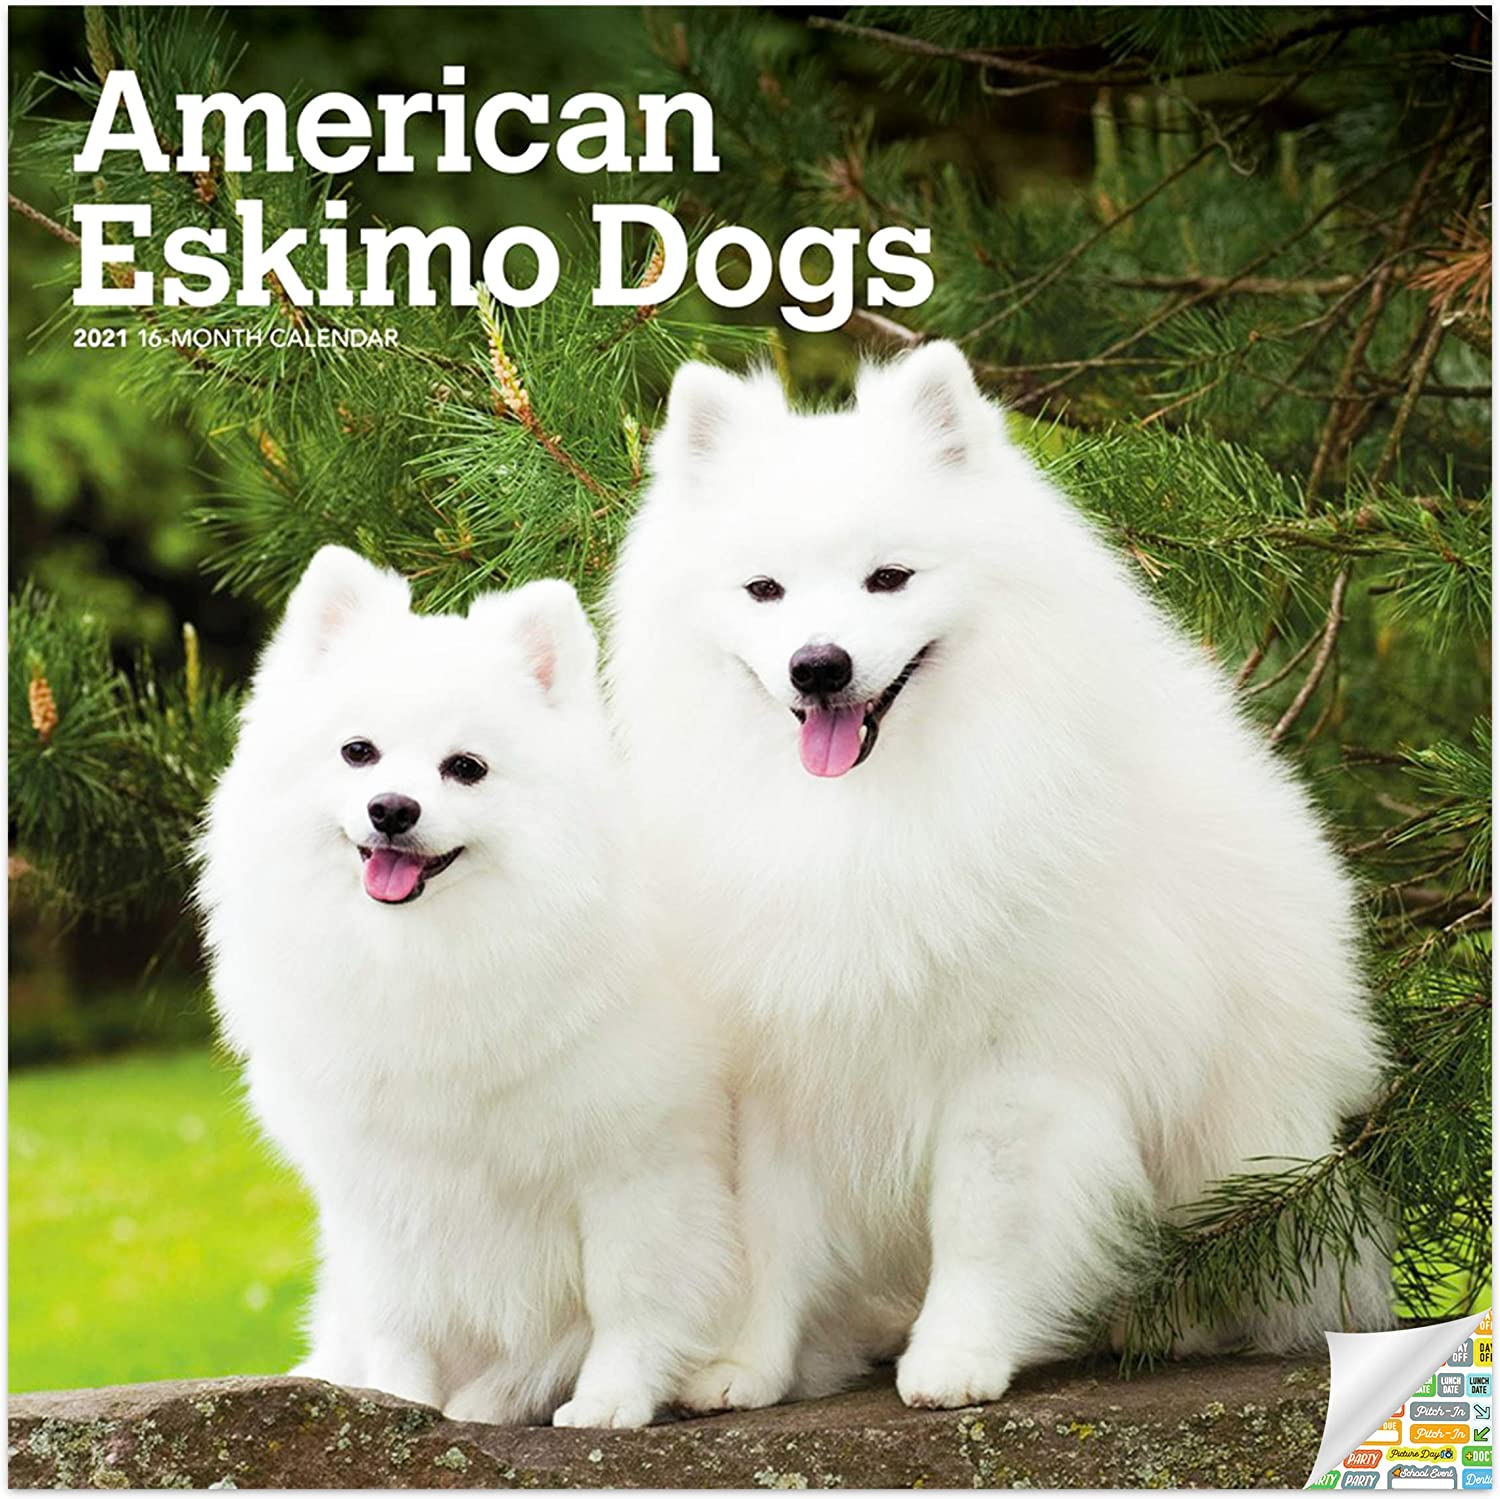 American Eskimo Dogs Calendar 2021 Bundle - Deluxe 2021 Eskies Wall Calendar with Over 100 Calendar Stickers (Dog Lover Gifts, Office Supplies)